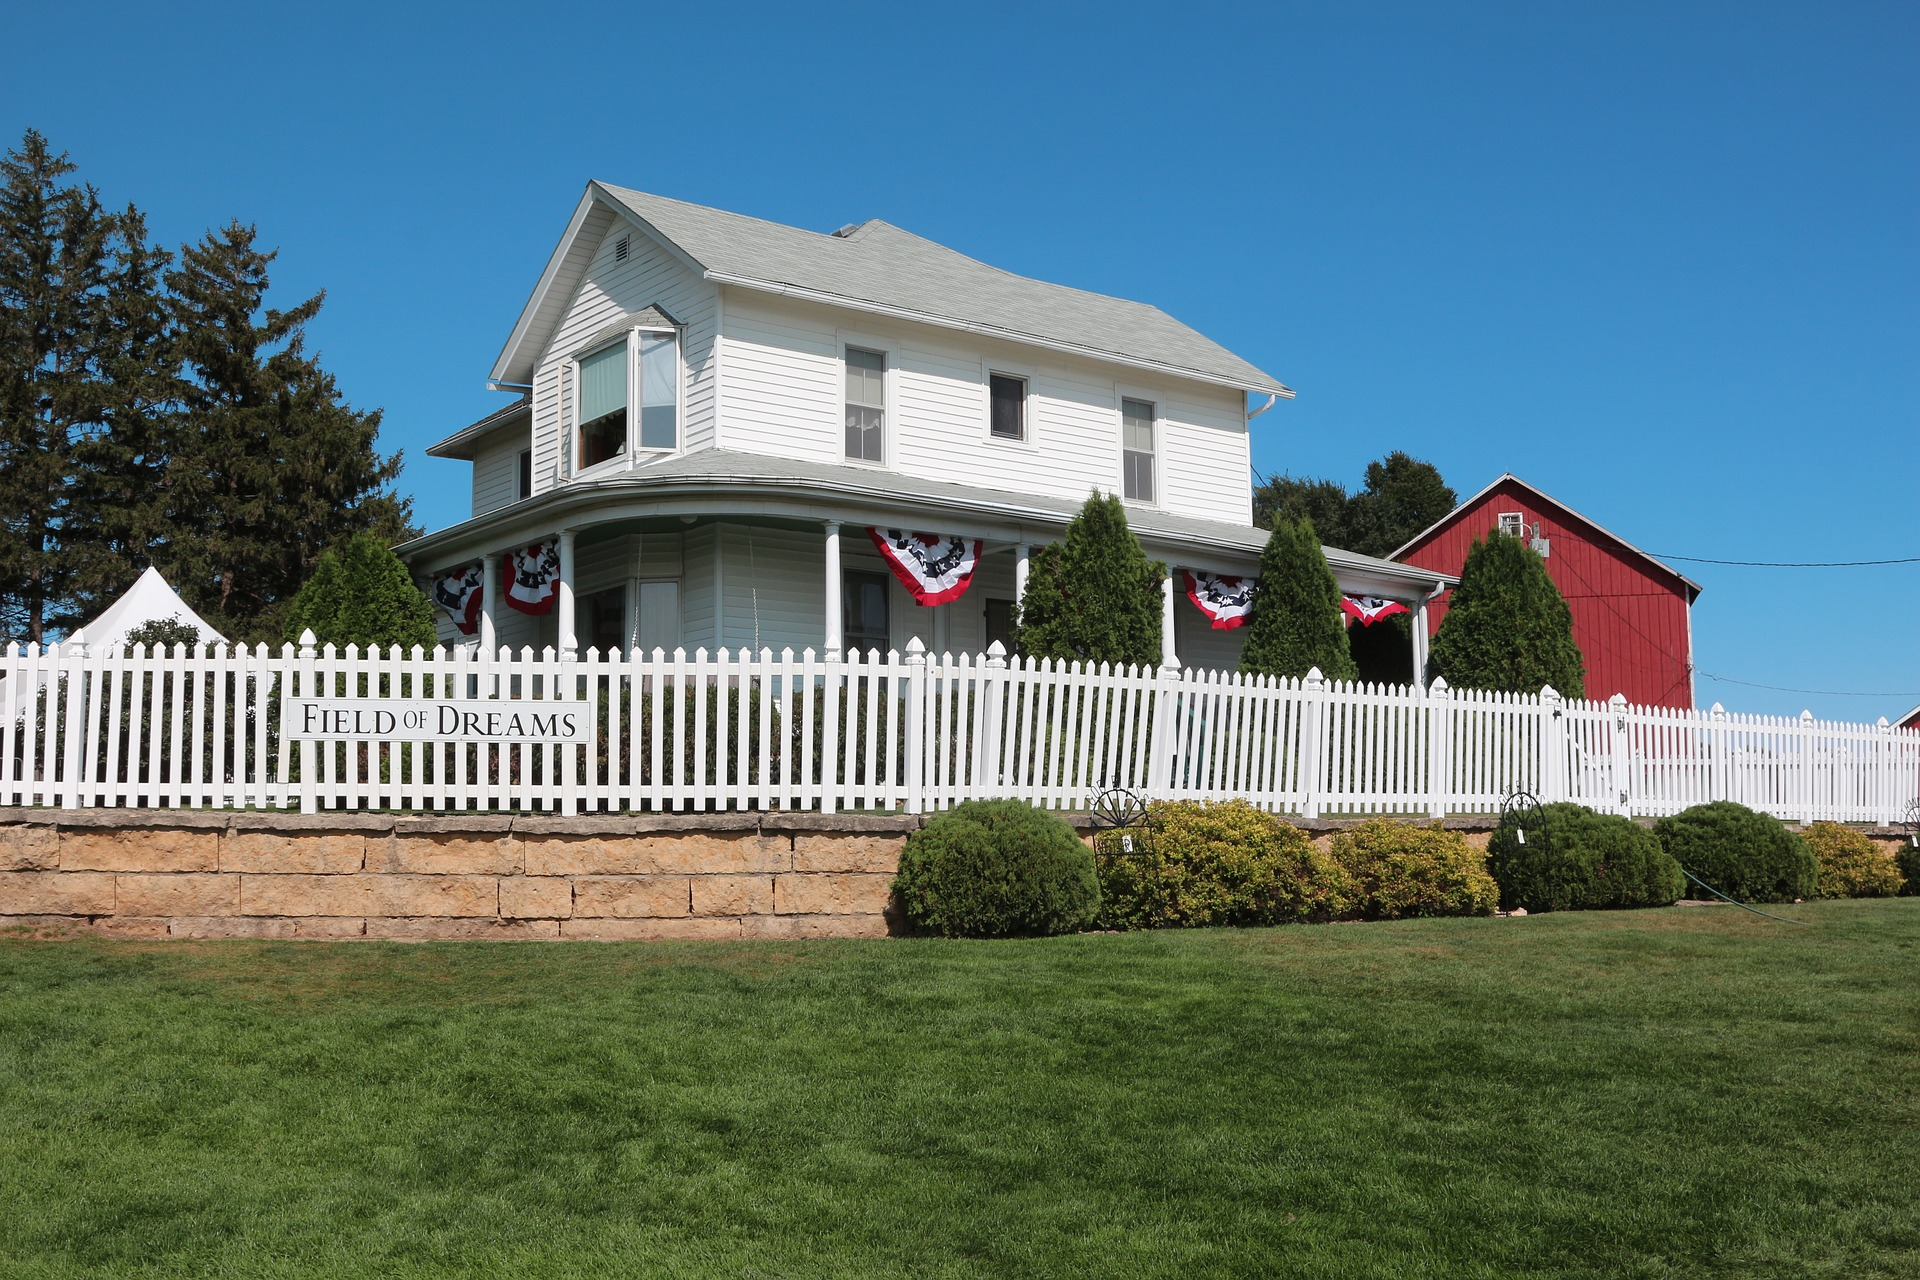 A white farmhouse with a picket fence located in Dyersville, Iowa, that was used in the baseball movie Field of Dreams.